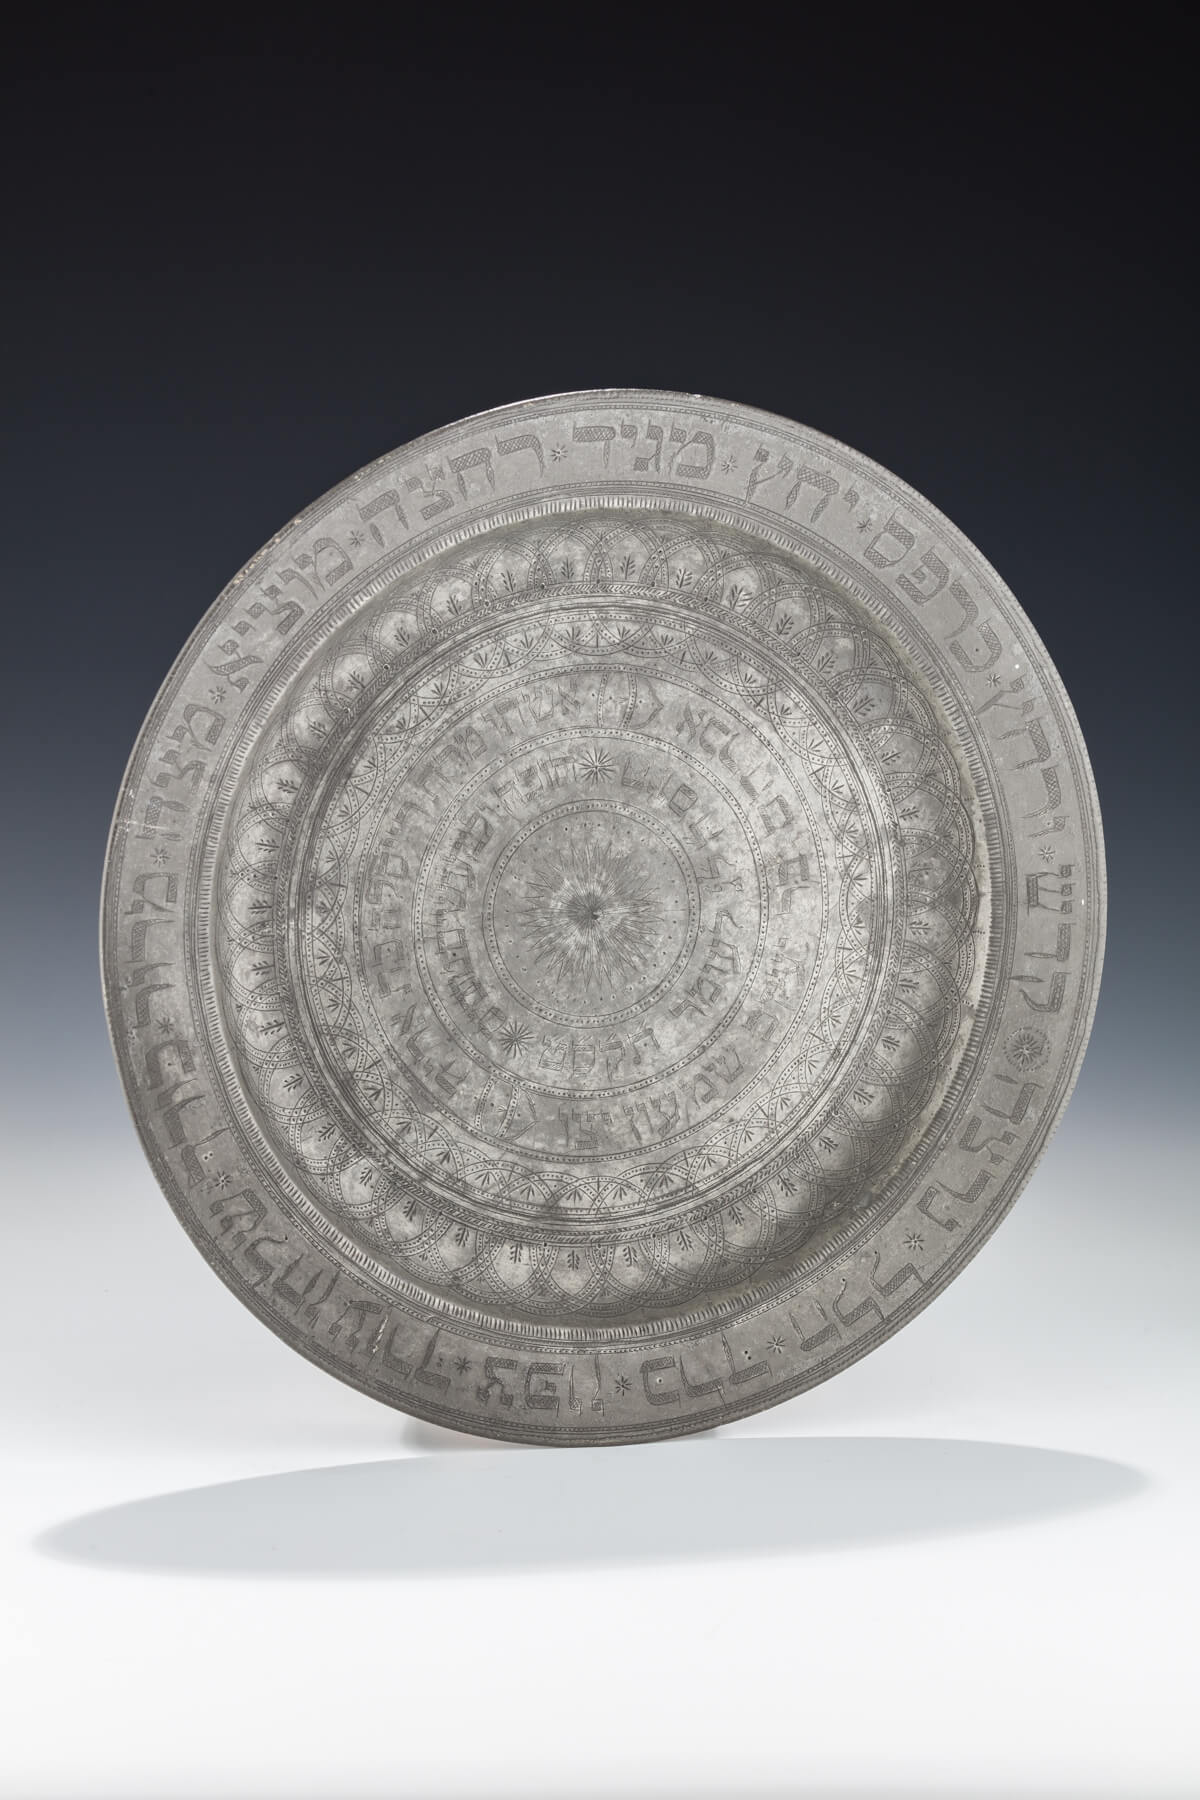 083. An Early Pewter Seder Dish